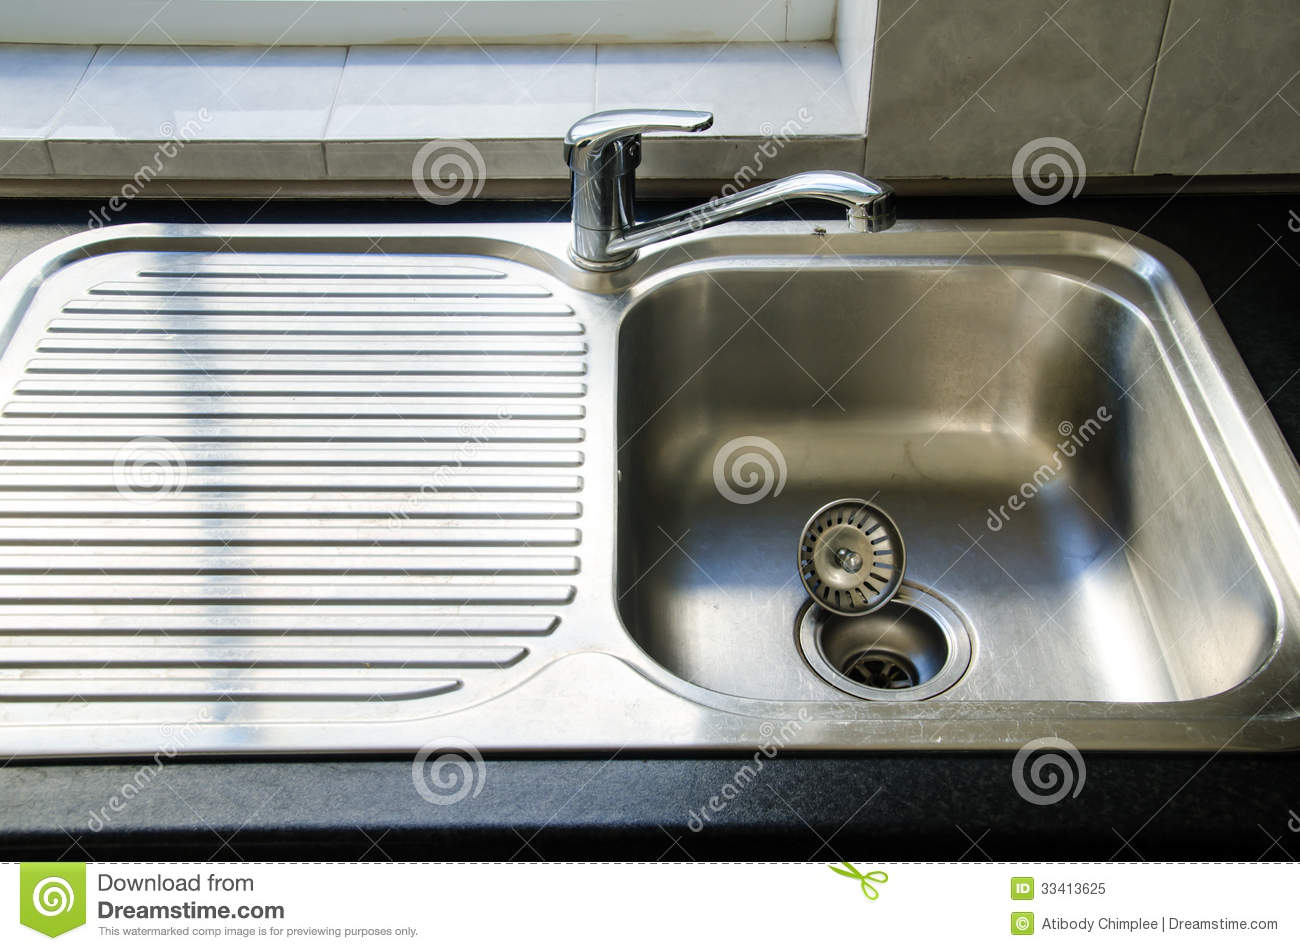 How To Make My Metal Kitchen Sink Shiny